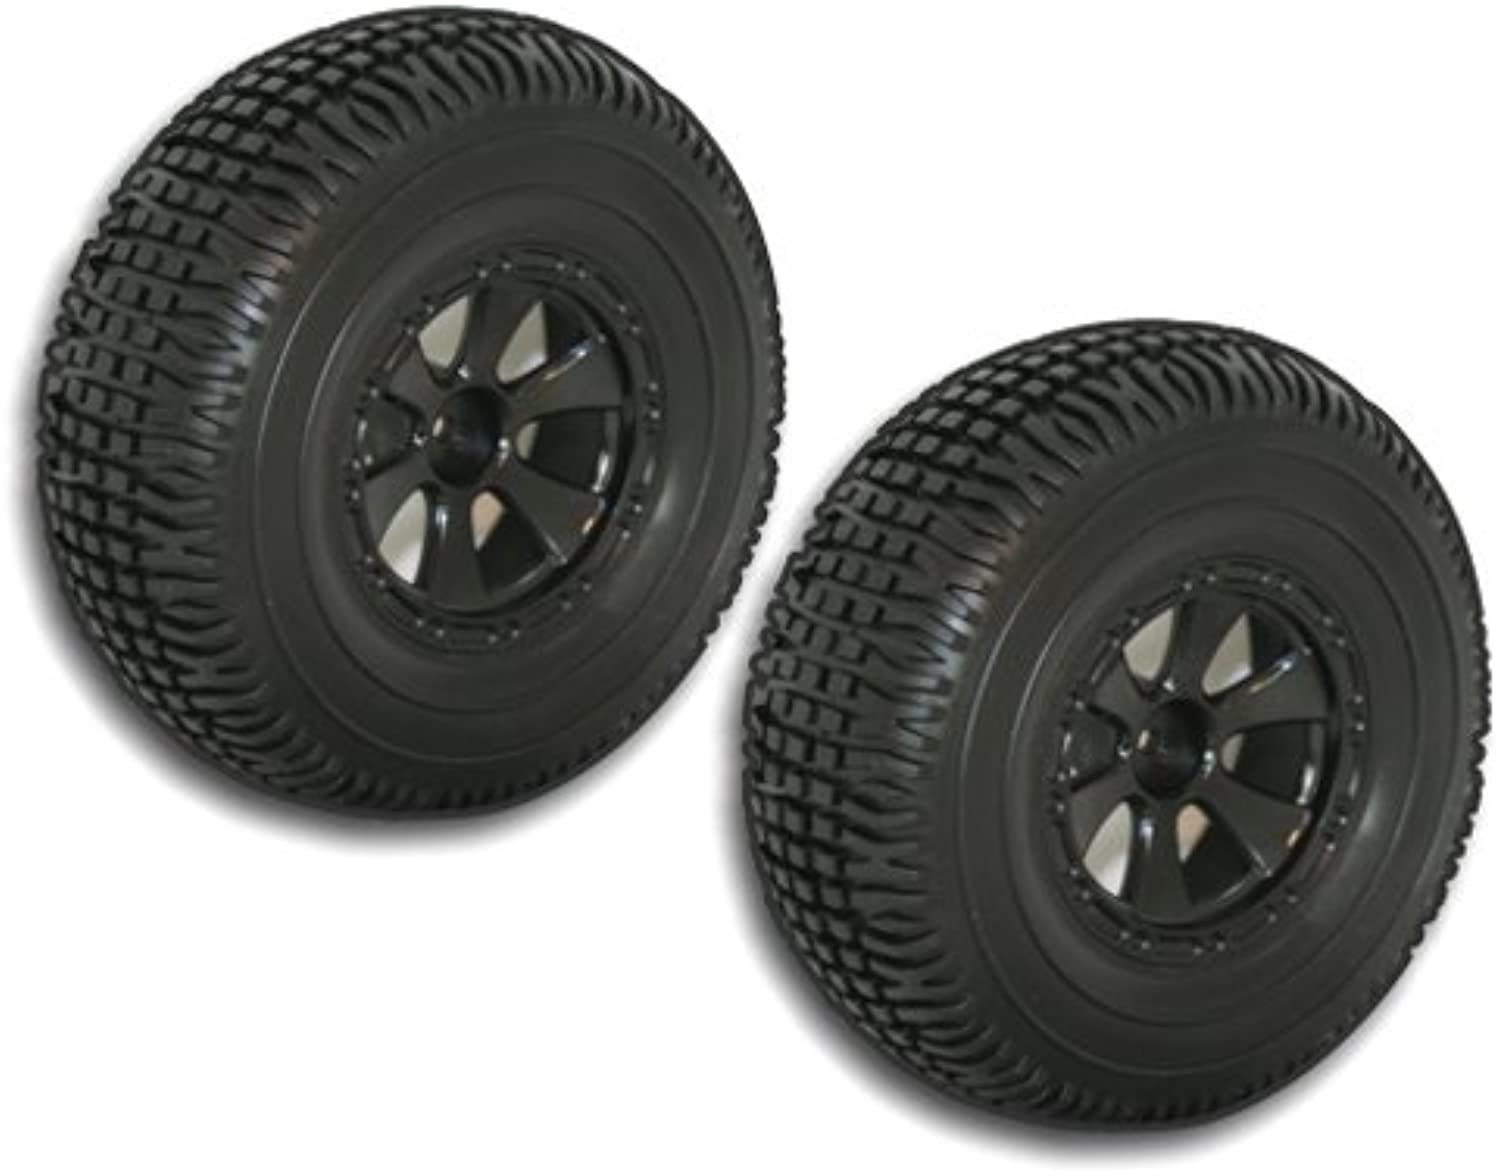 Redcat Racing Black Short Course Wheels and Tires, 2-Piece